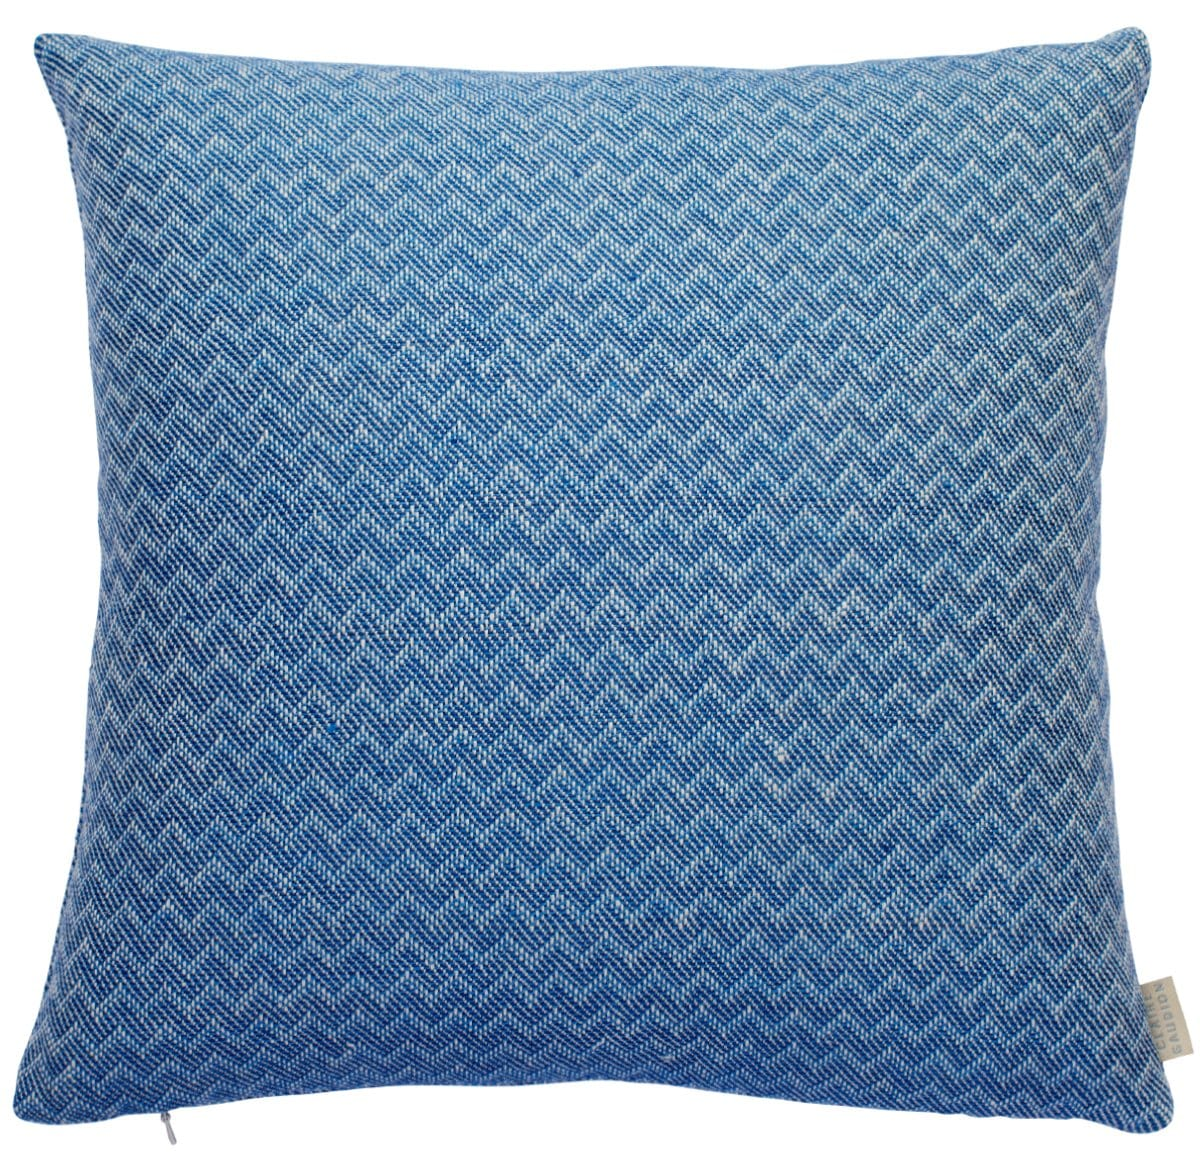 Wave Midday Cushion